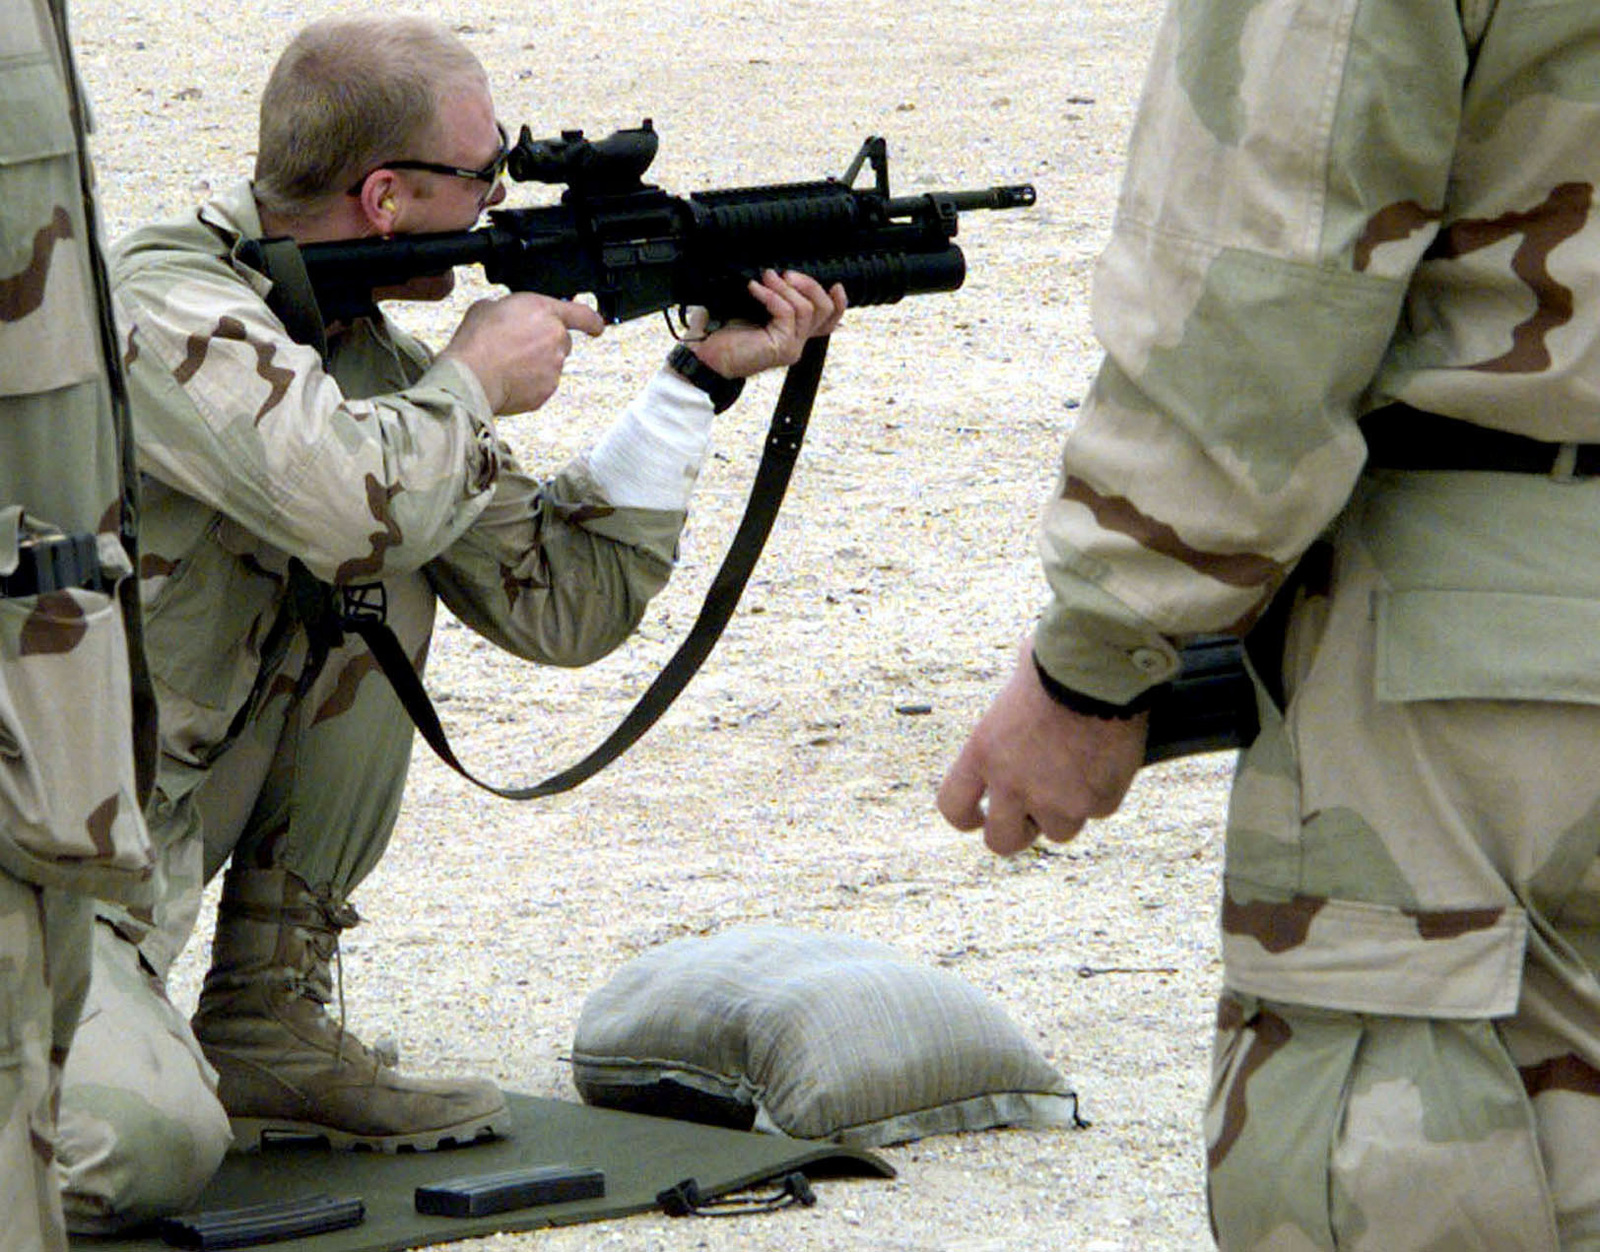 A US Navy SEAL, from SEAL team 8, shoots a Colt 5 56MM M4